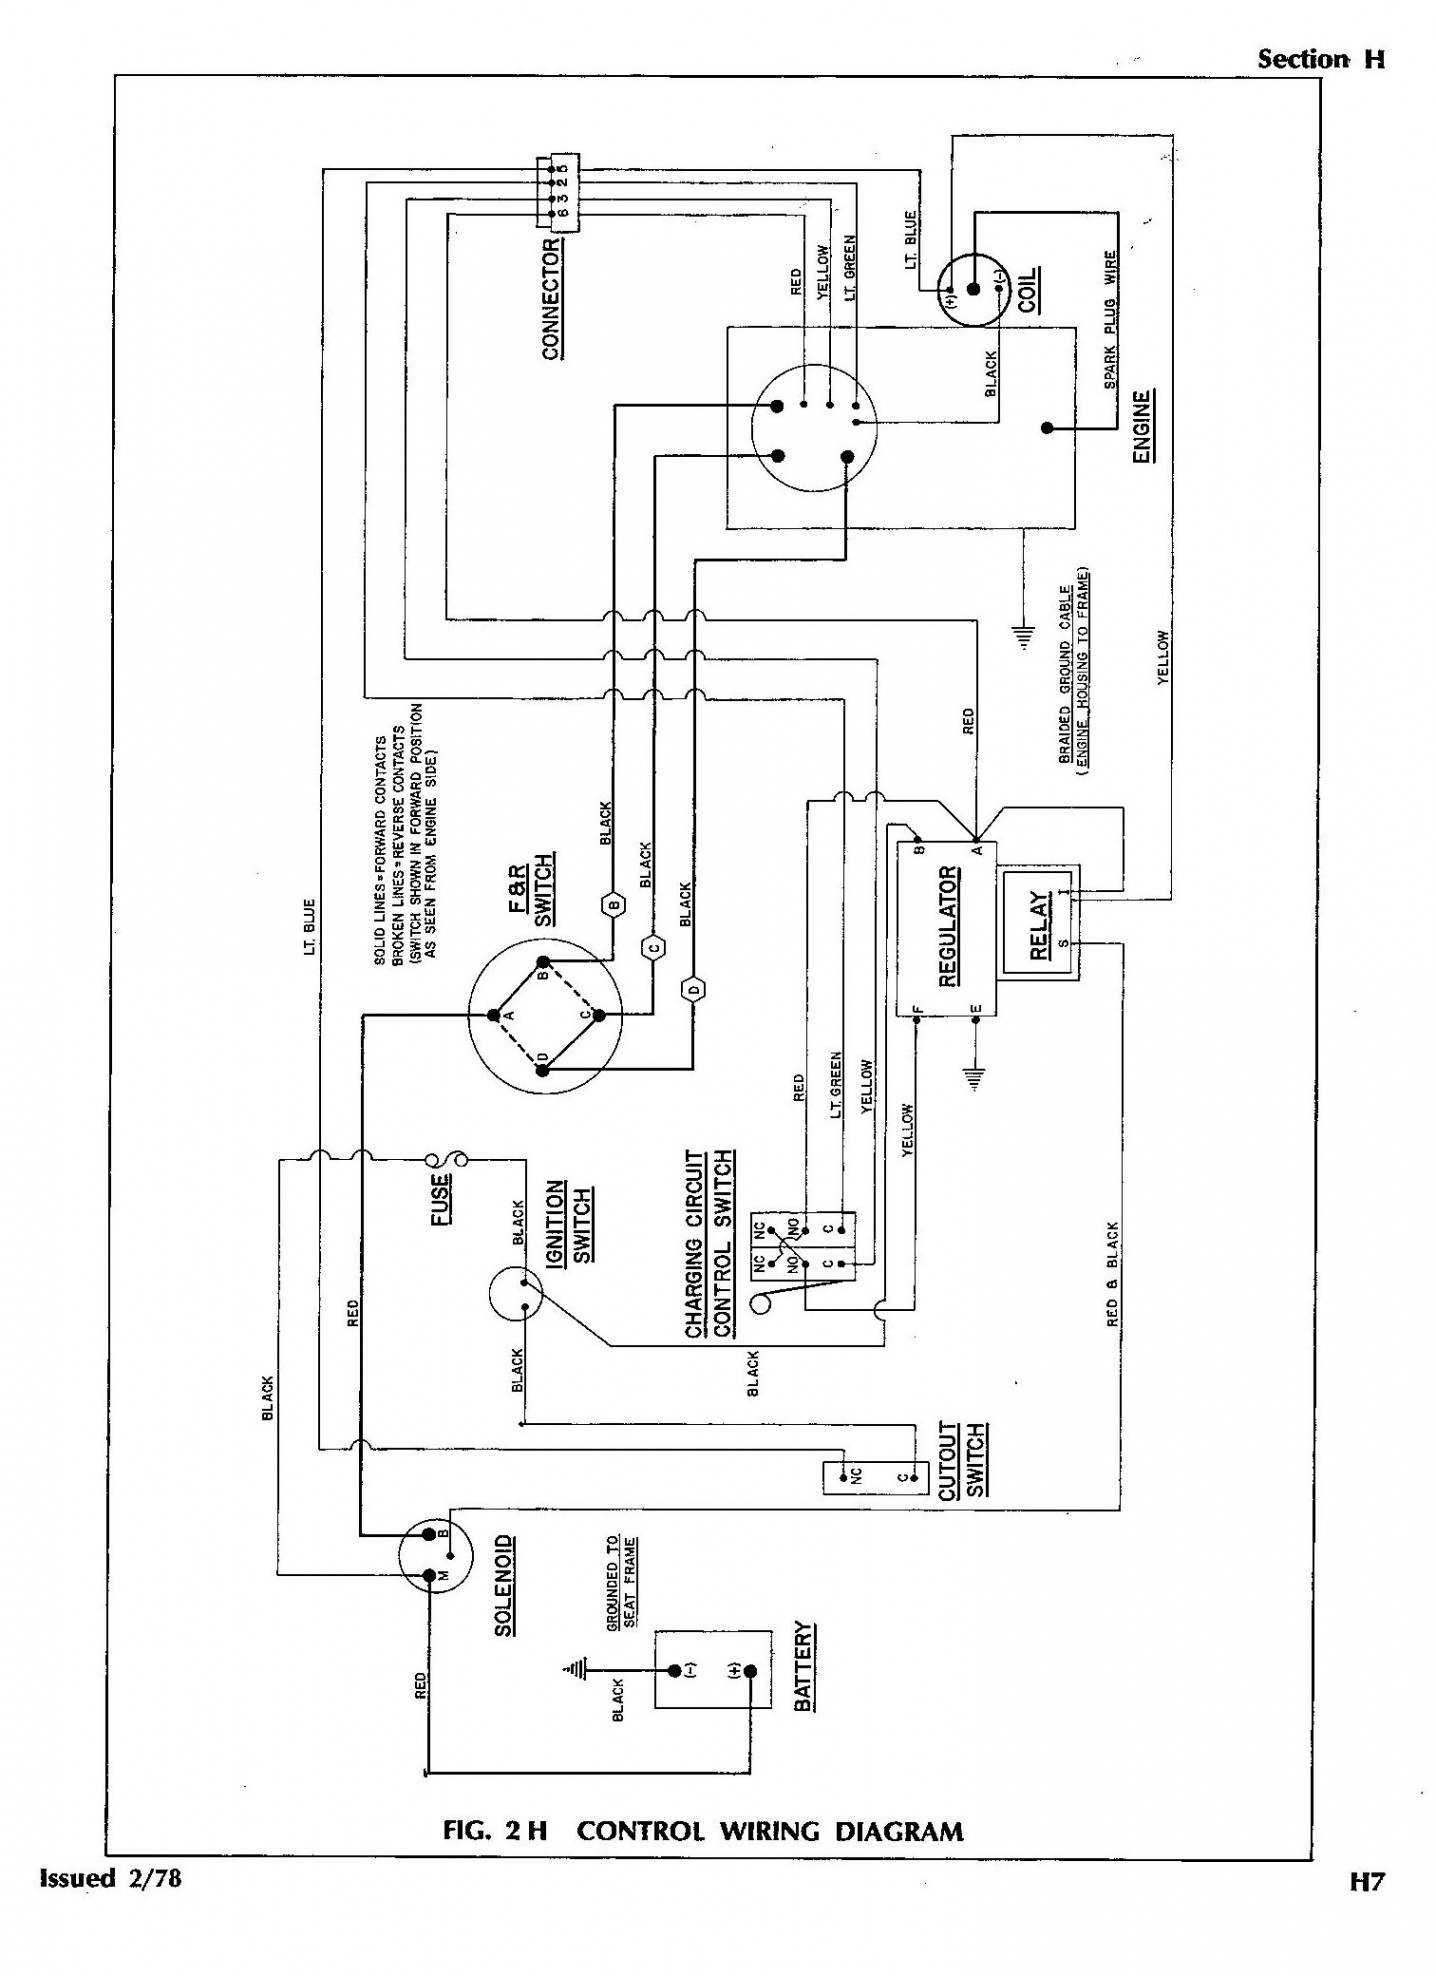 Diagram 2007 Ez Go Wiring Diagram Full Version Hd Quality Wiring Diagram Diagramsouthm Gisbertovalori It